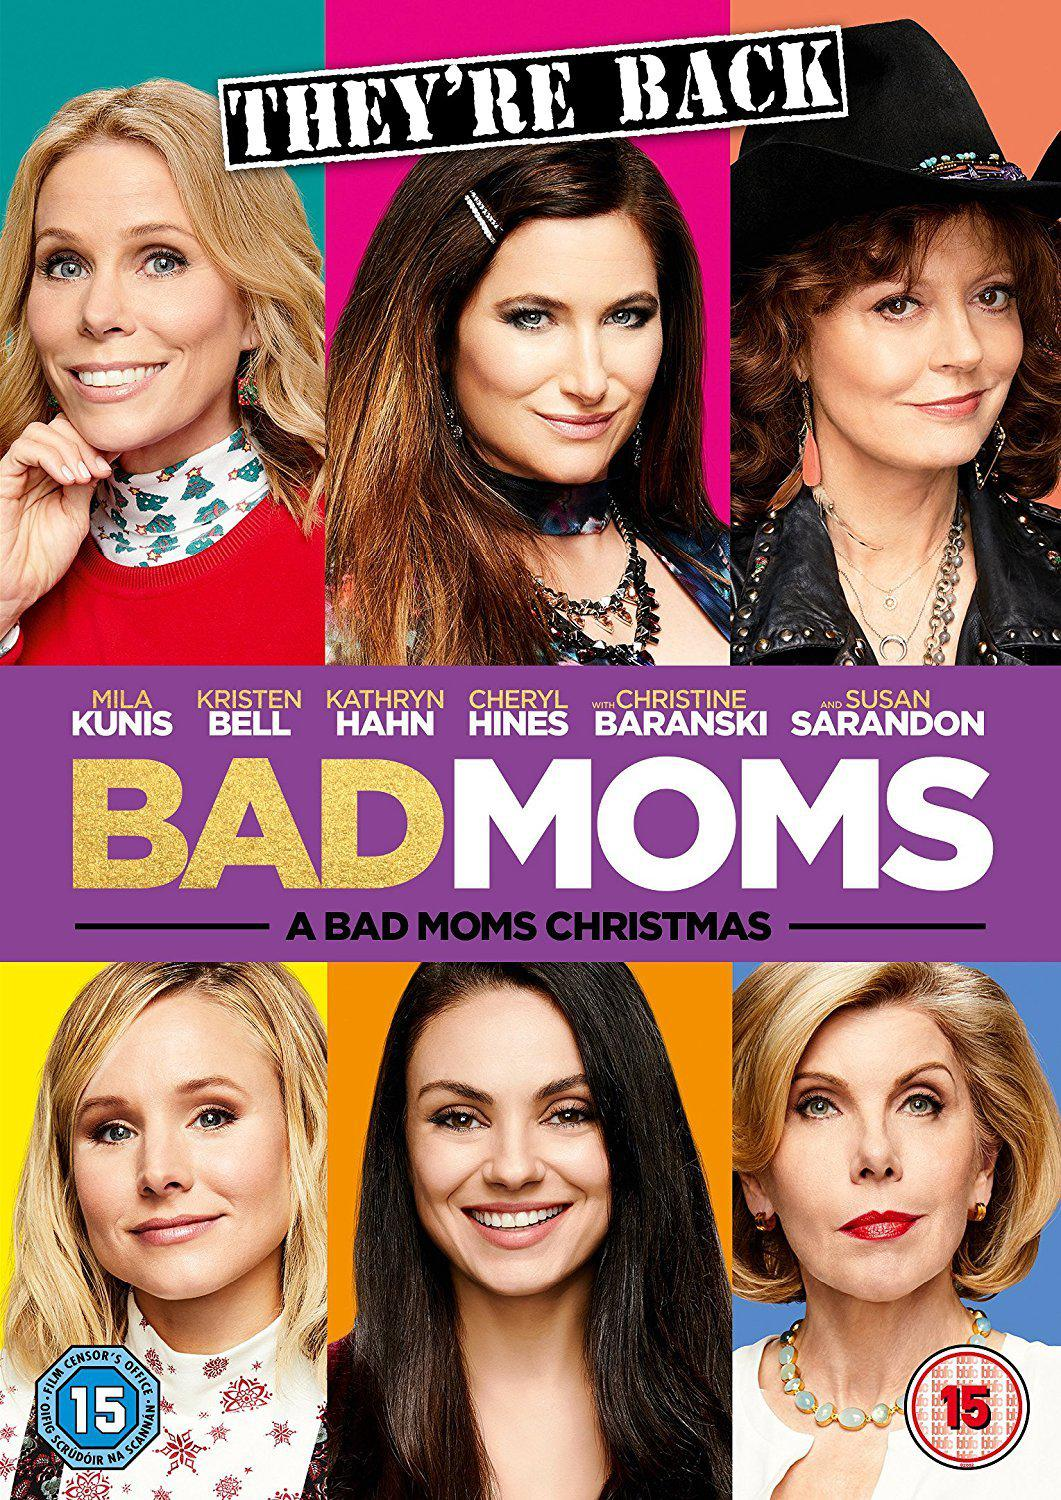 Bad Moms Christmas Dvd Release Date.A Bad Moms Christmas Dvd